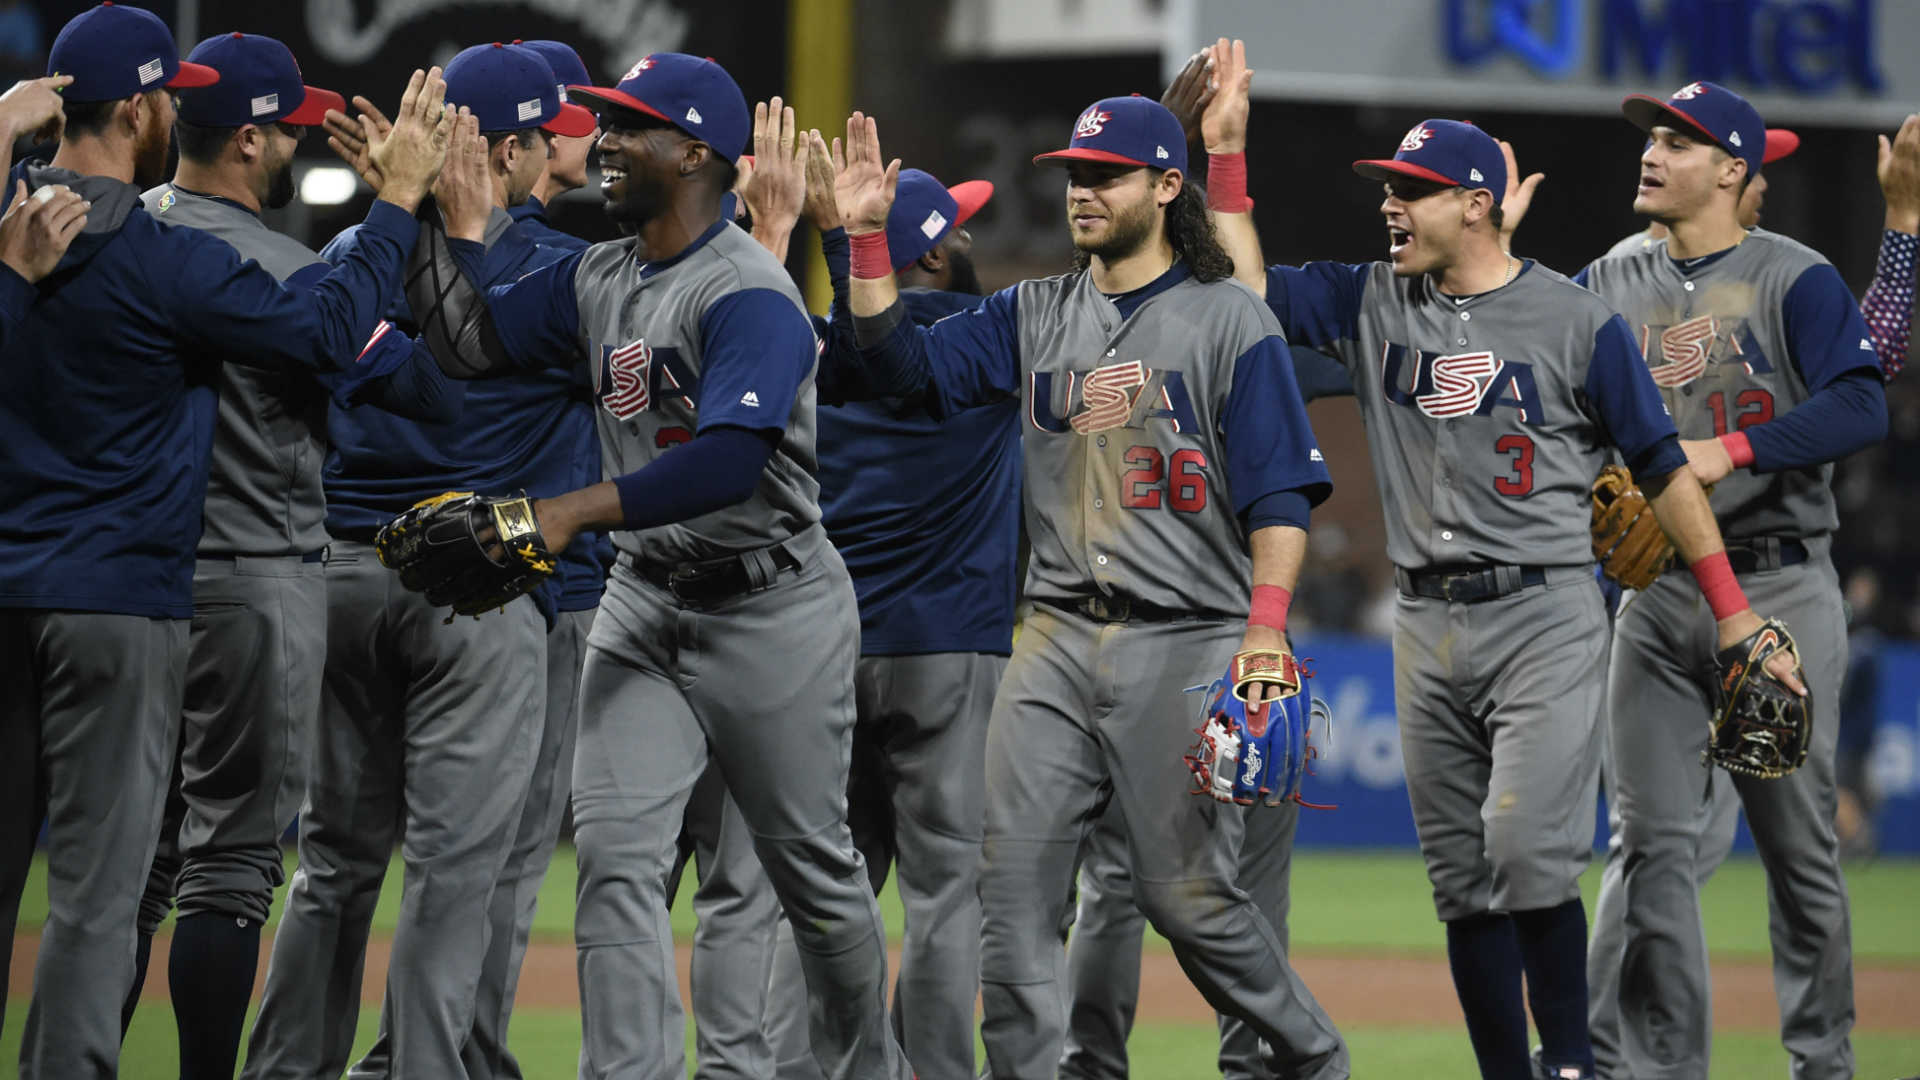 United States of America advances to face Puerto Rico in WBC final